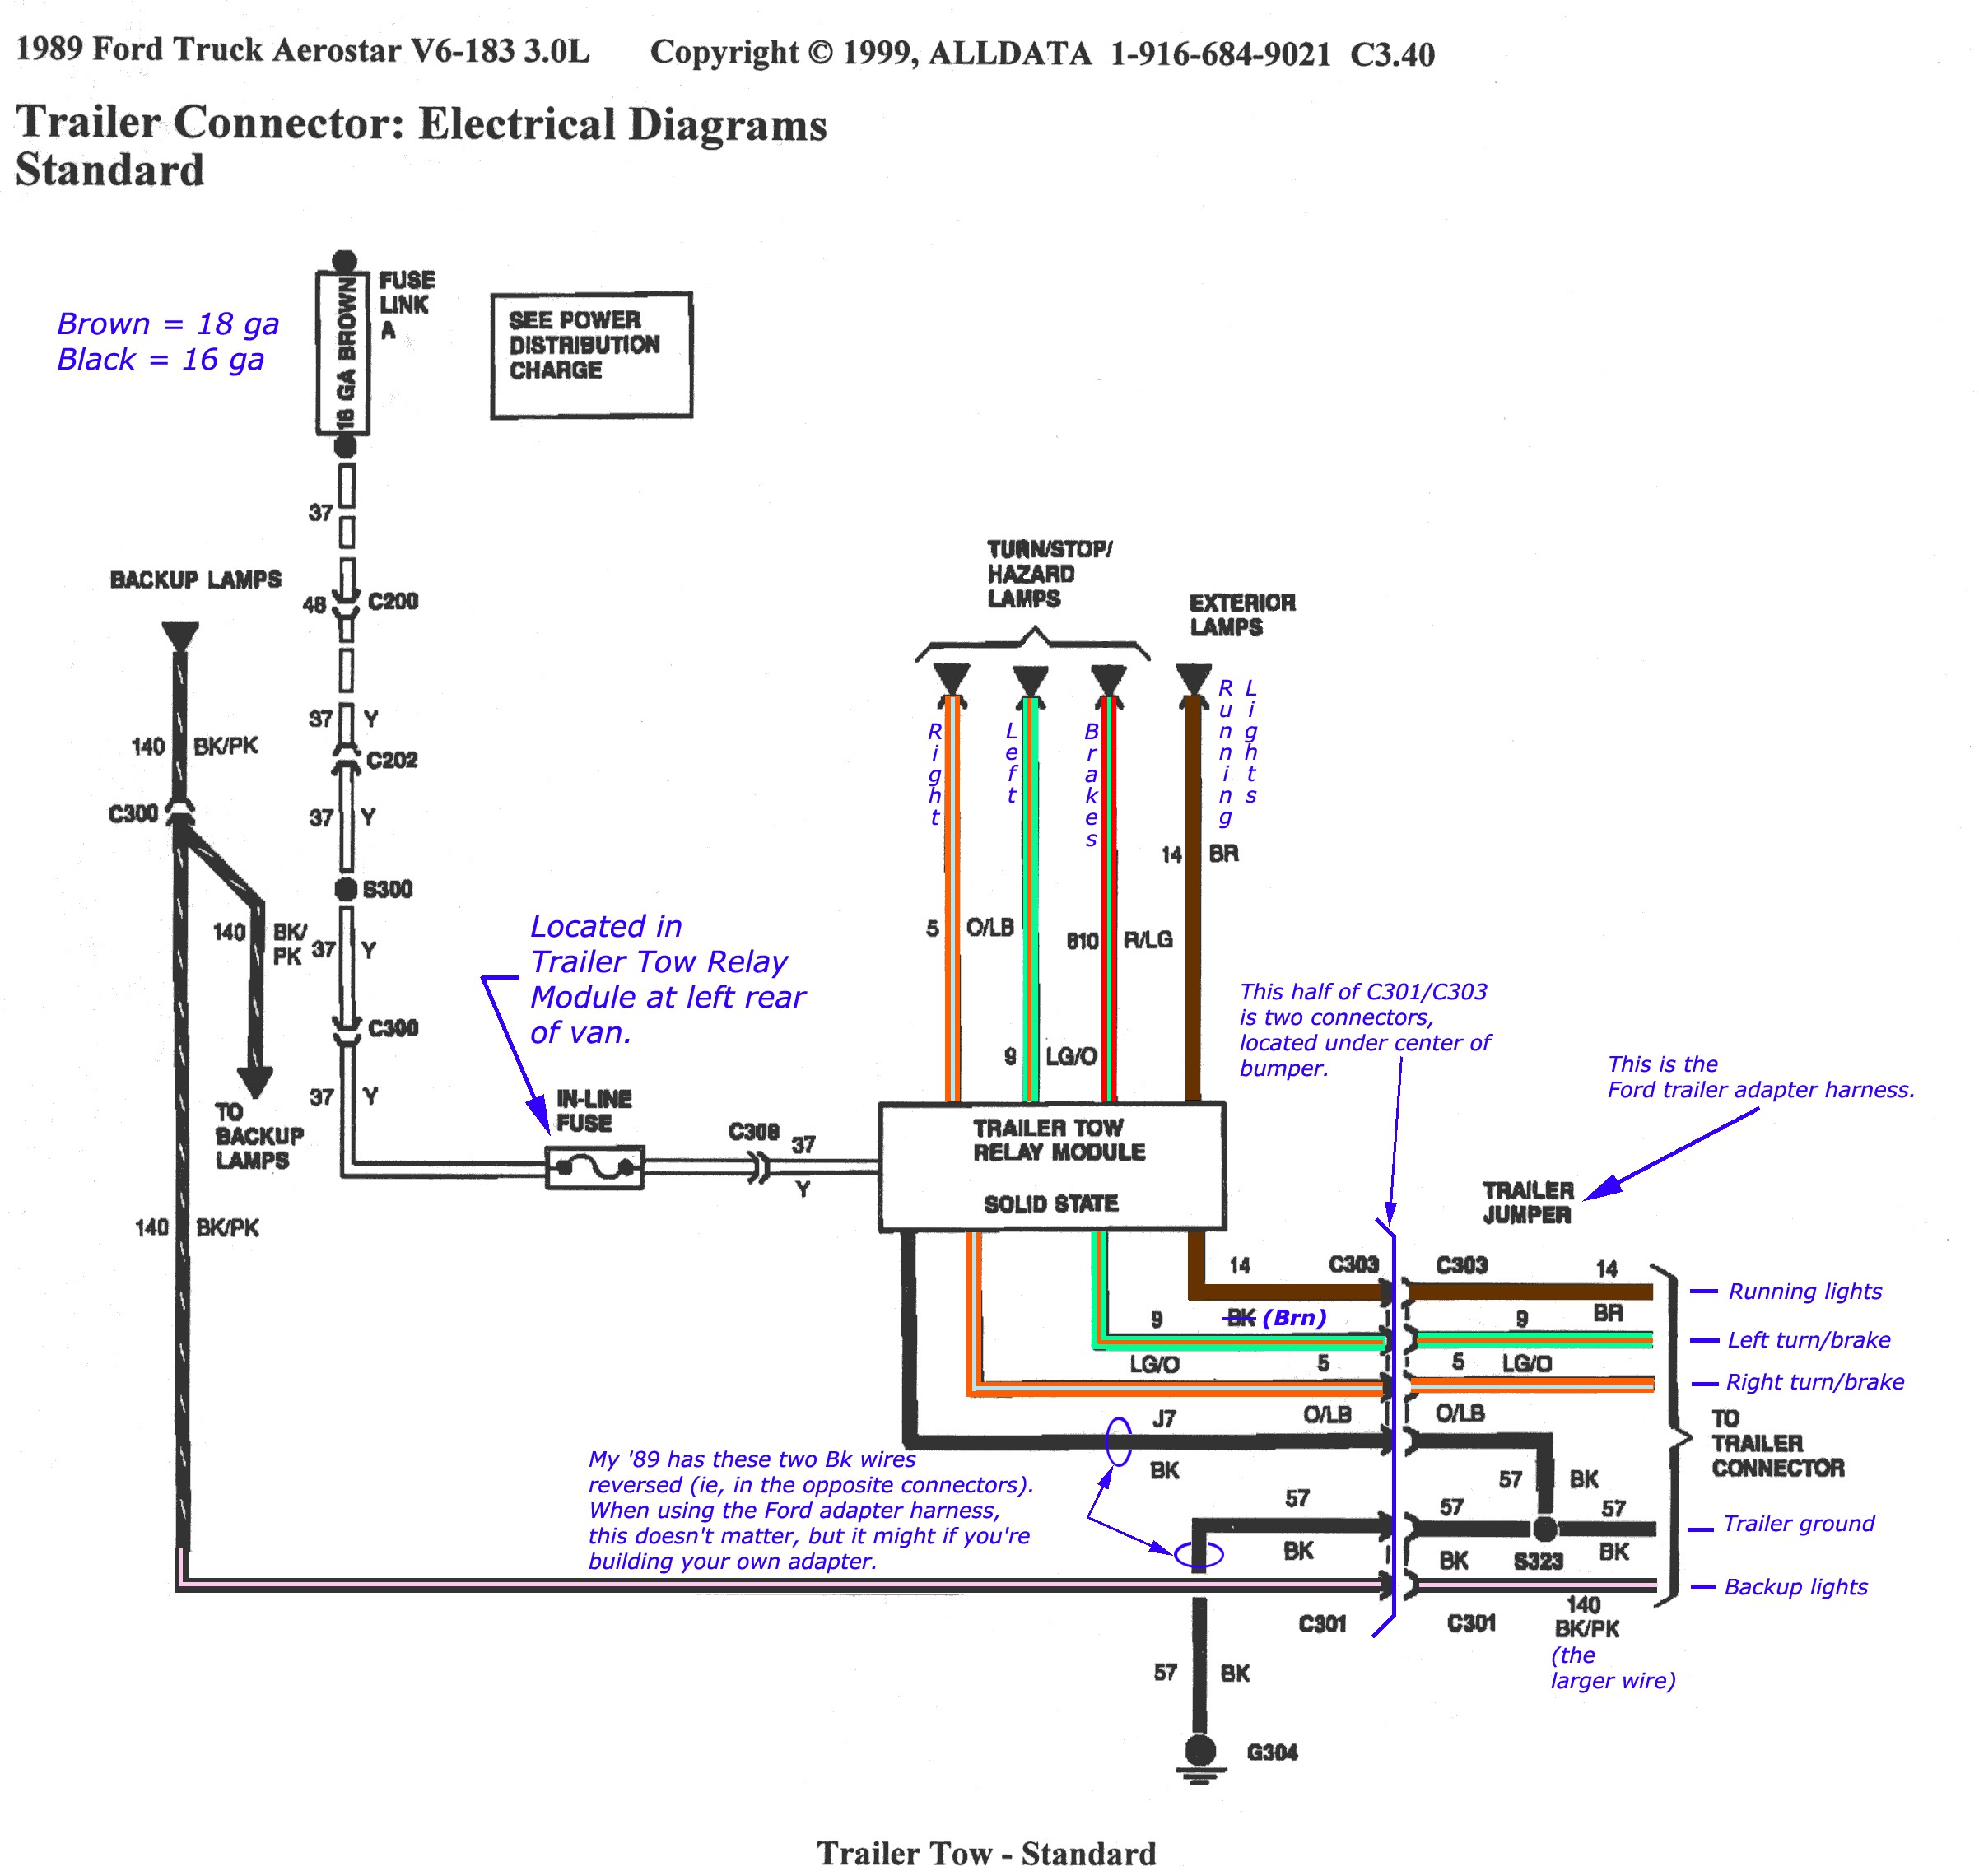 2000 Ford Trailer Wiring Diagram - Data Wiring Diagram Site - Car Trailer Wiring Diagram